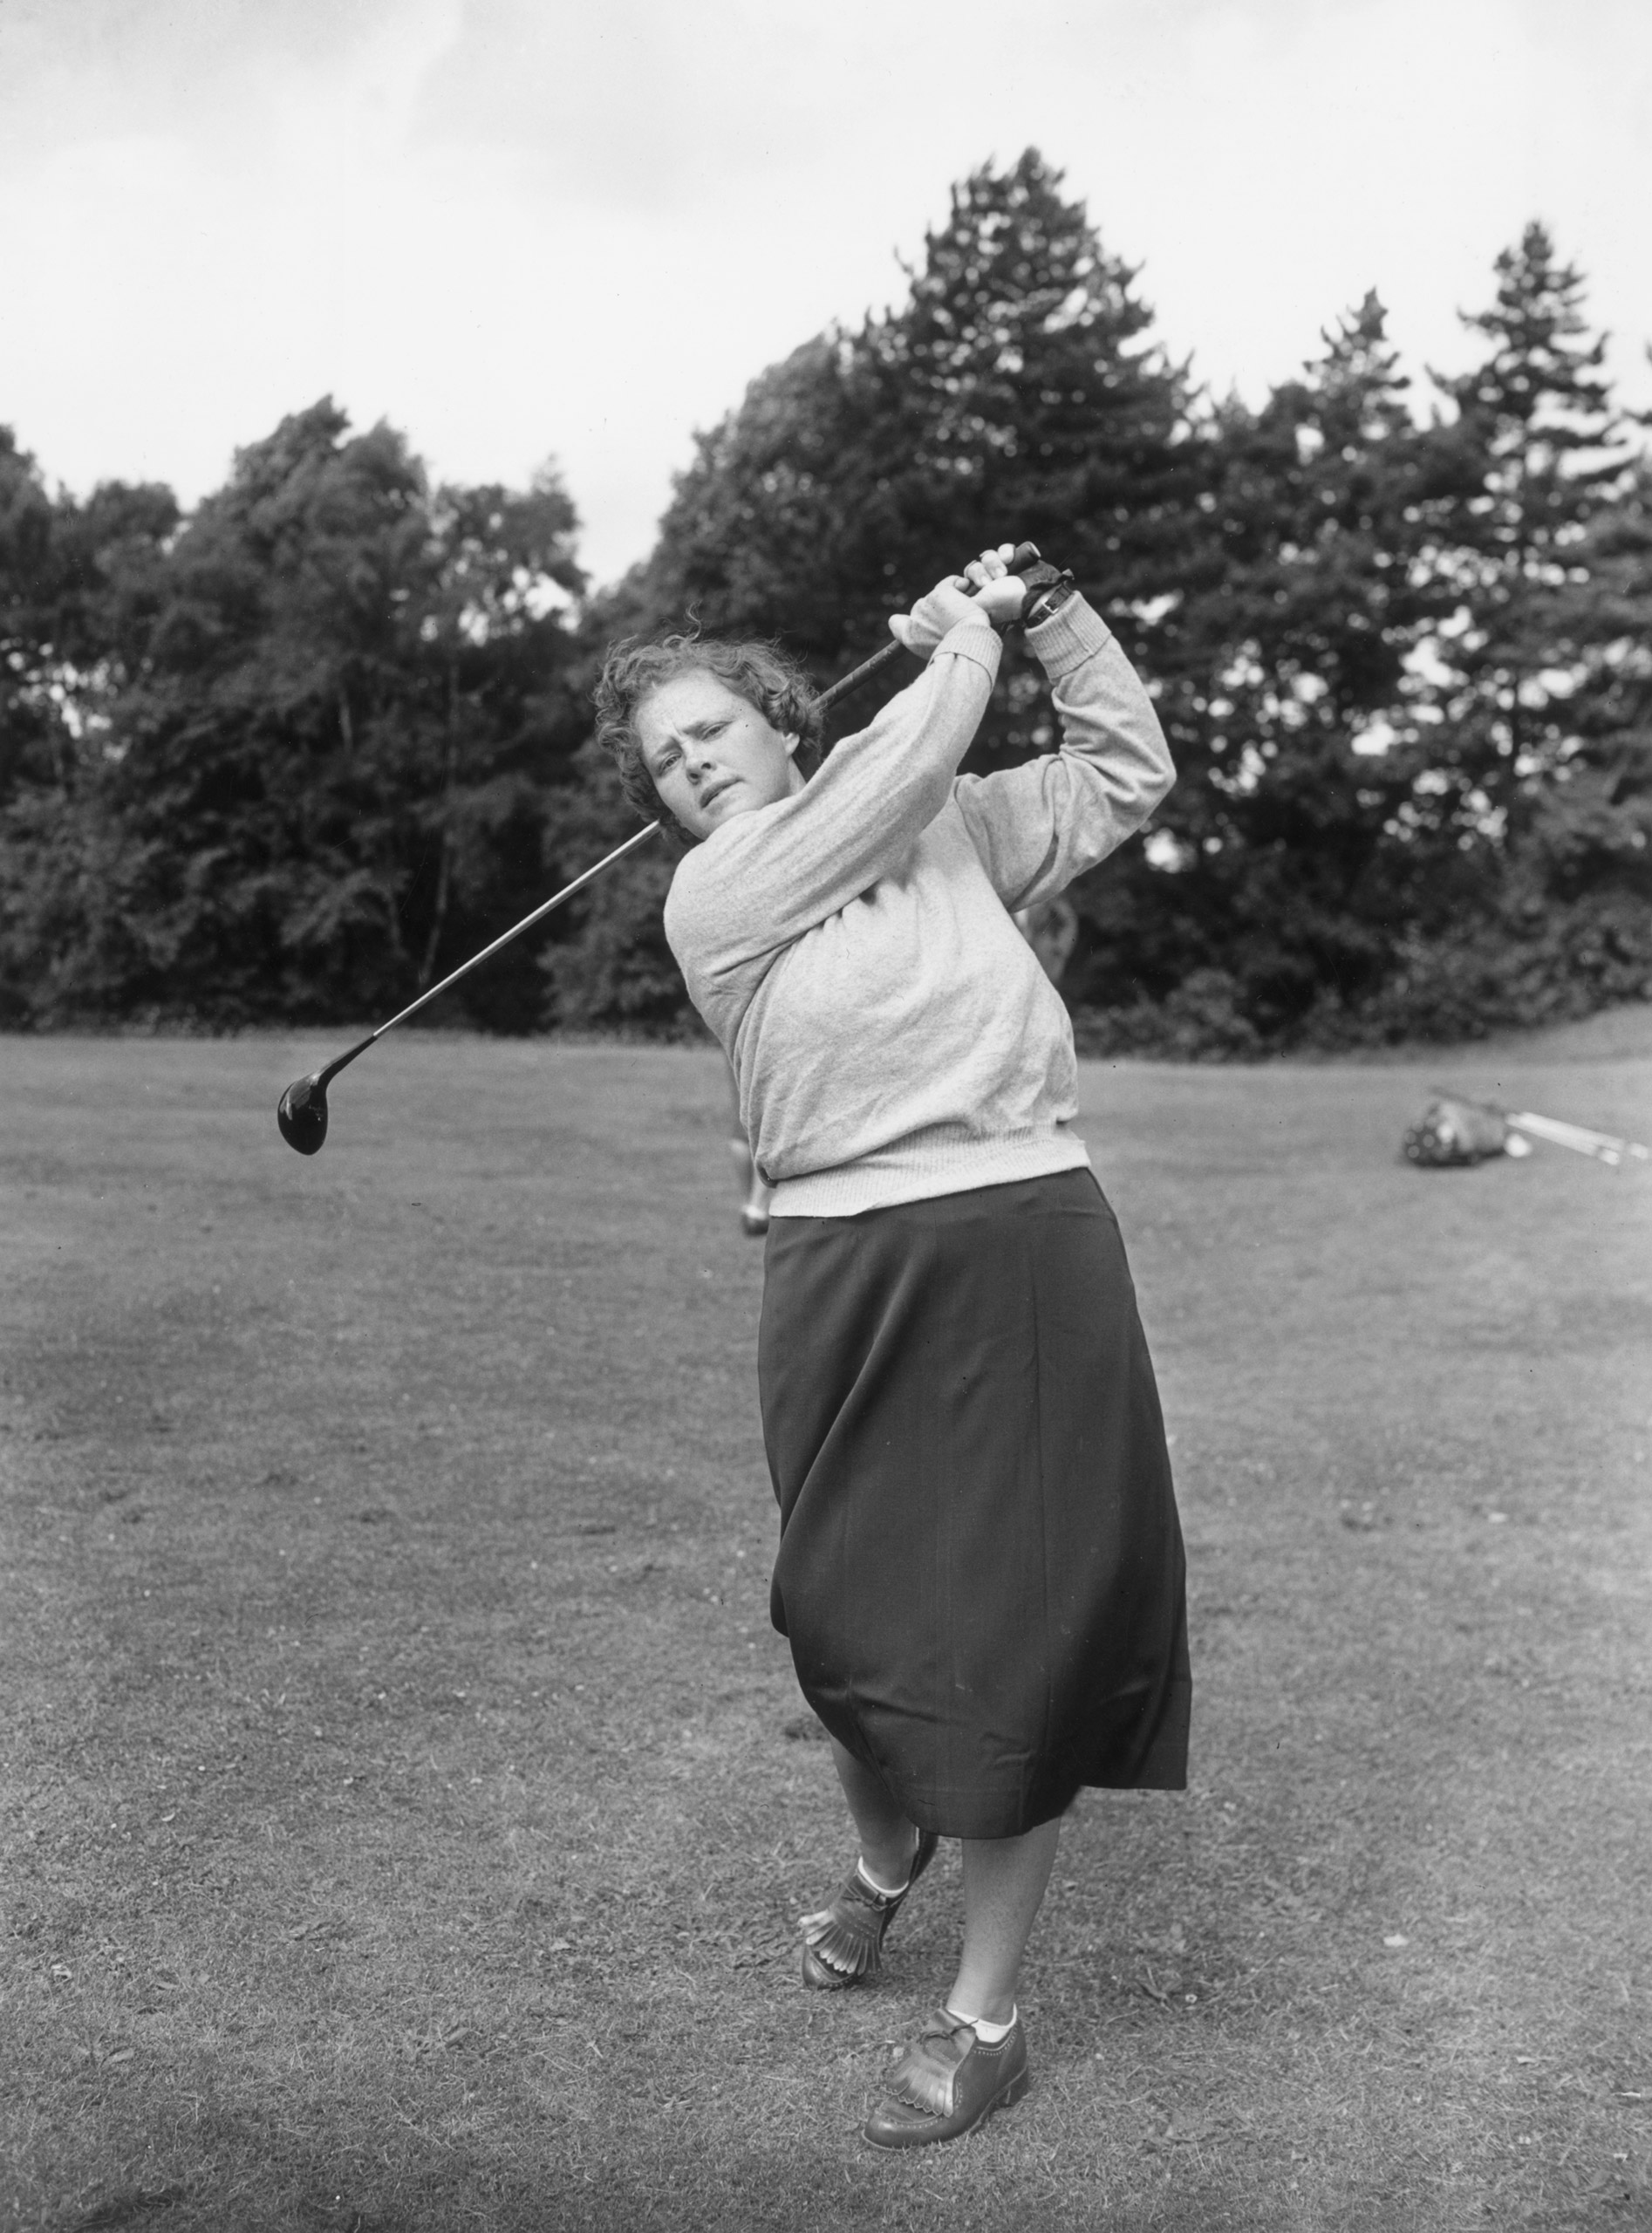 One of America's top ranking professional golfers Patty Berg practicing at Sunningdale, 1951. She was one of the founders of the LPGA (along with Zaharias) and TIME once noted that her father encouraged her to start golfing so she would stop playing football on a  neighborhood boys team.